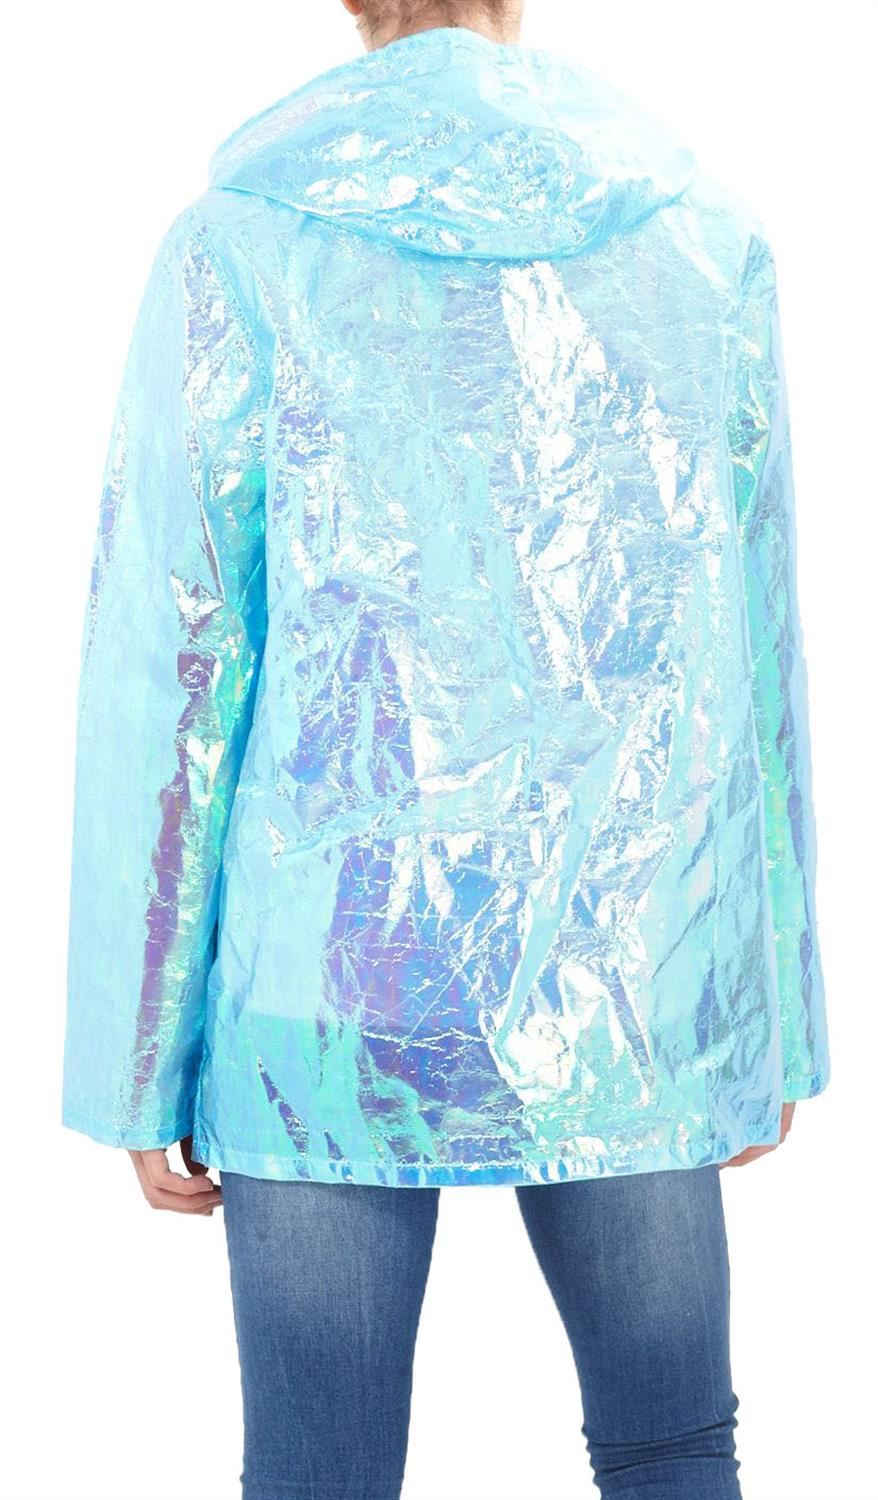 New-Ladies-Unicorn-Holographic-Zipped-Neon-Festival-Mac-Parka-Raincoat-Jacket thumbnail 5